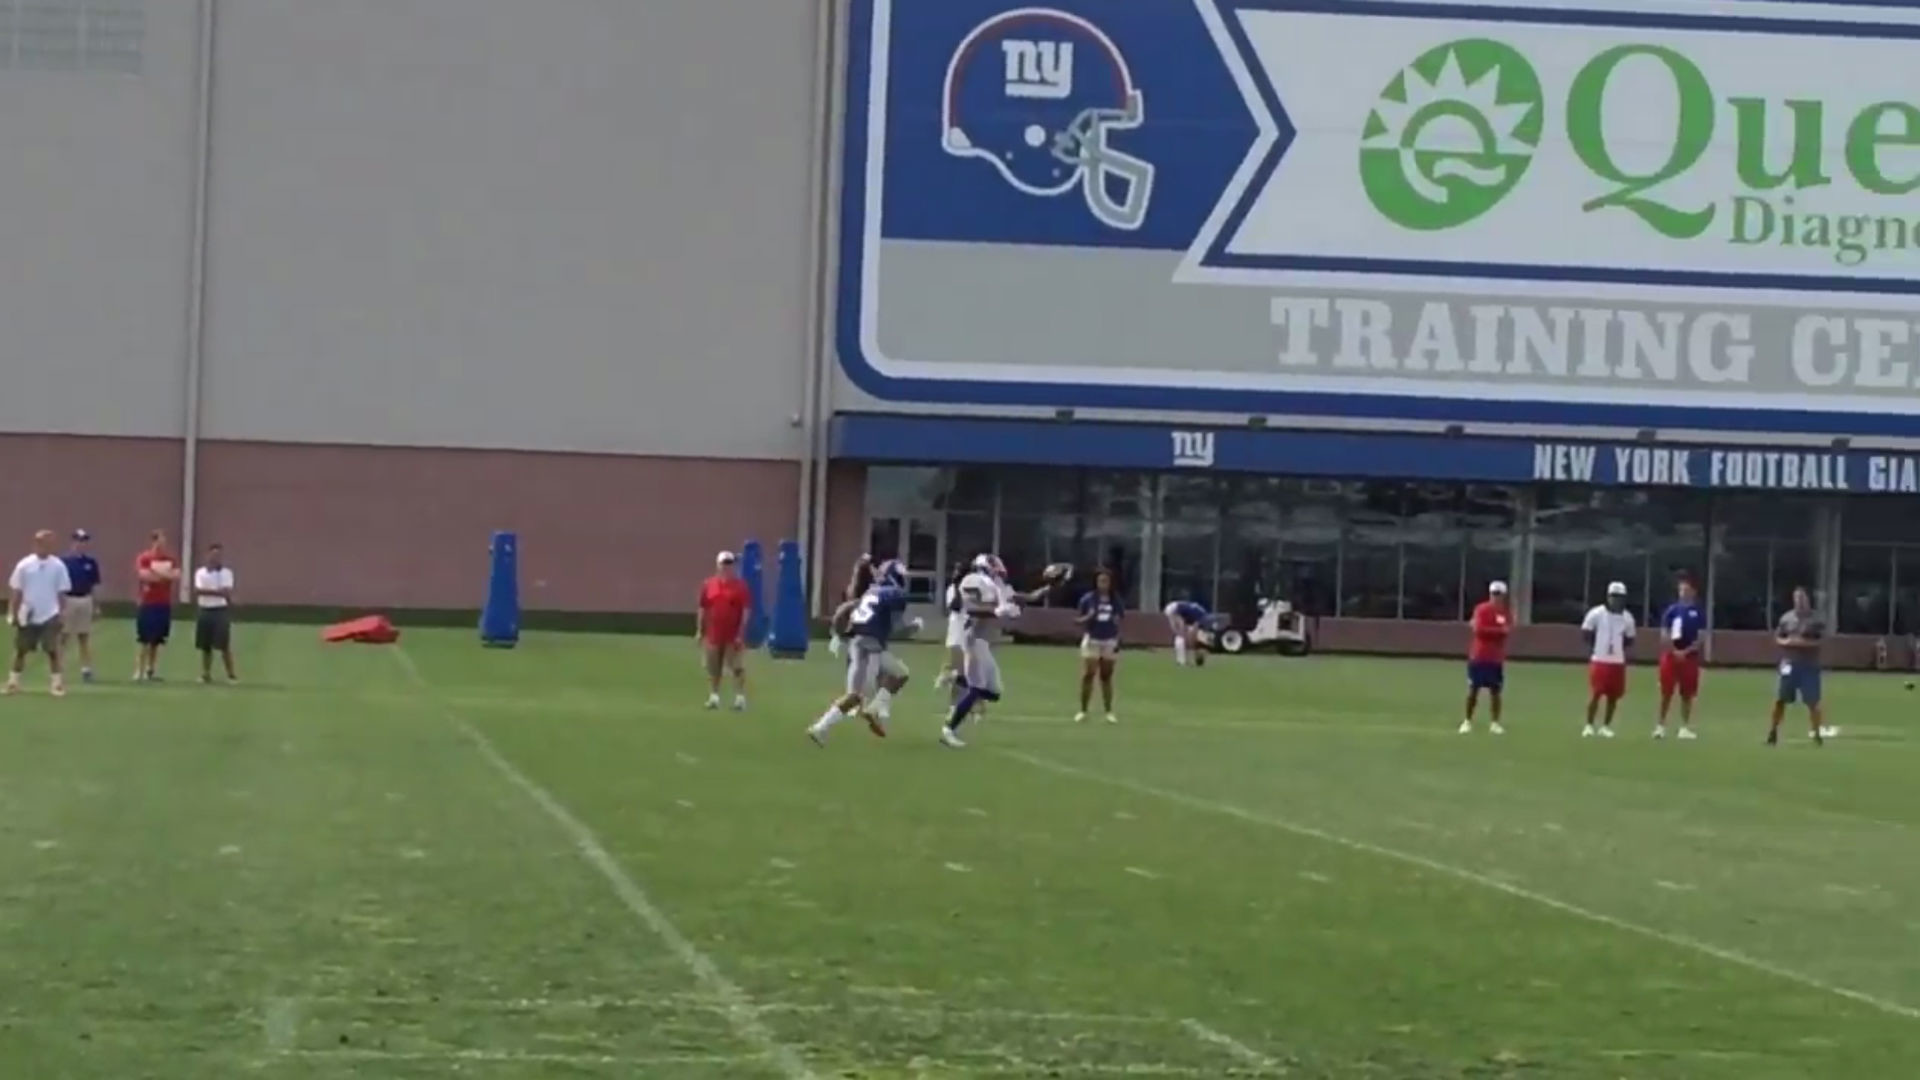 Odell Beckham Jr. is back making one-handed catches at Giants camp | NFL |  Sporting News